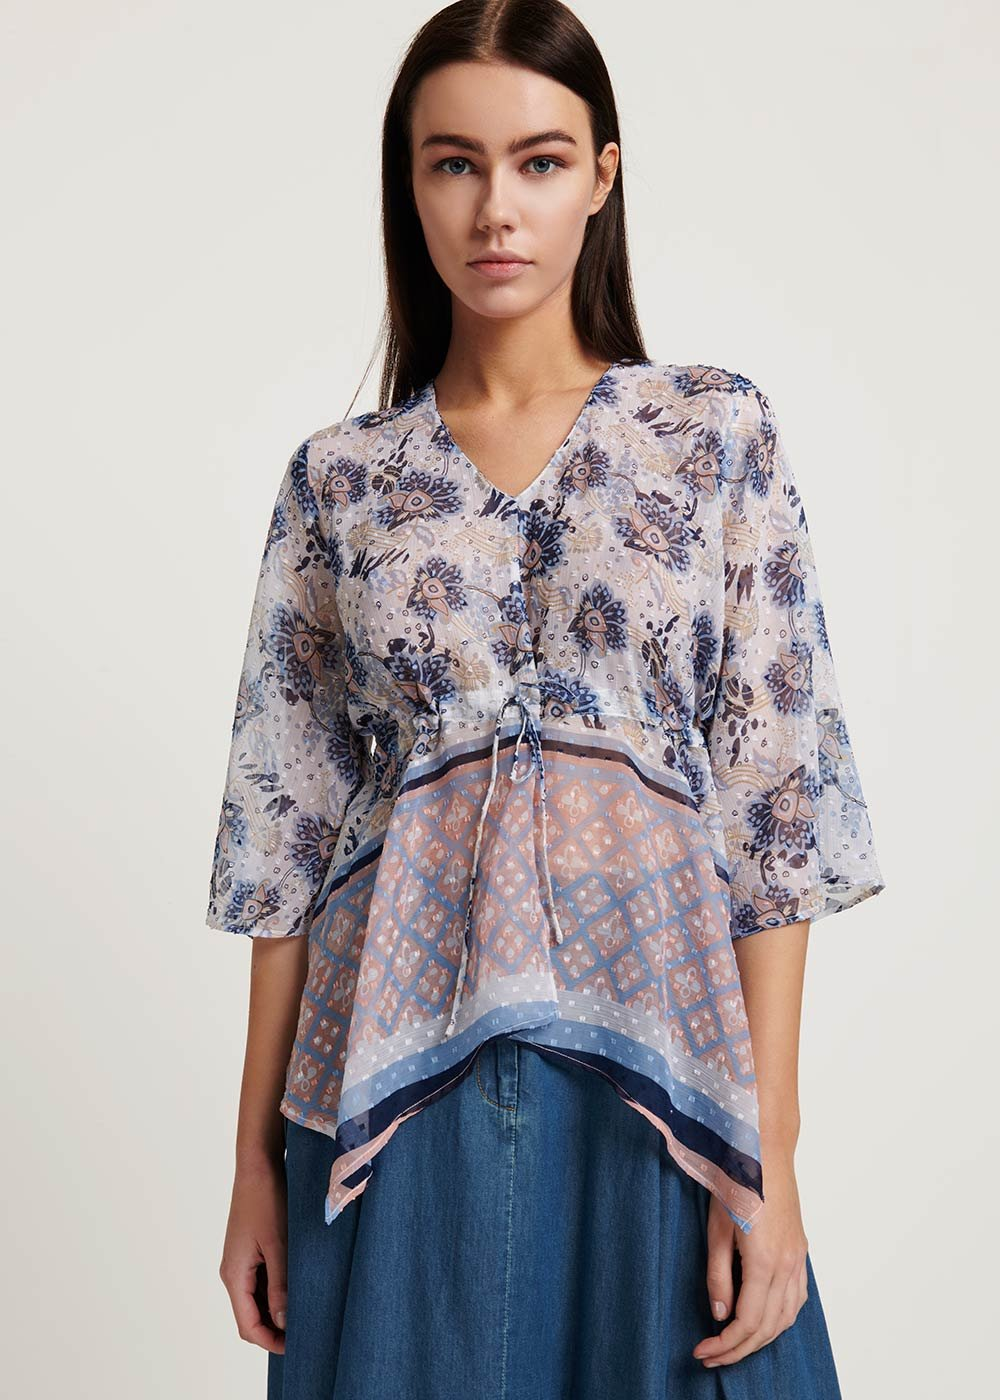 Claudy blouse with floral pattern - White\ Avion\ Fantasia - Woman